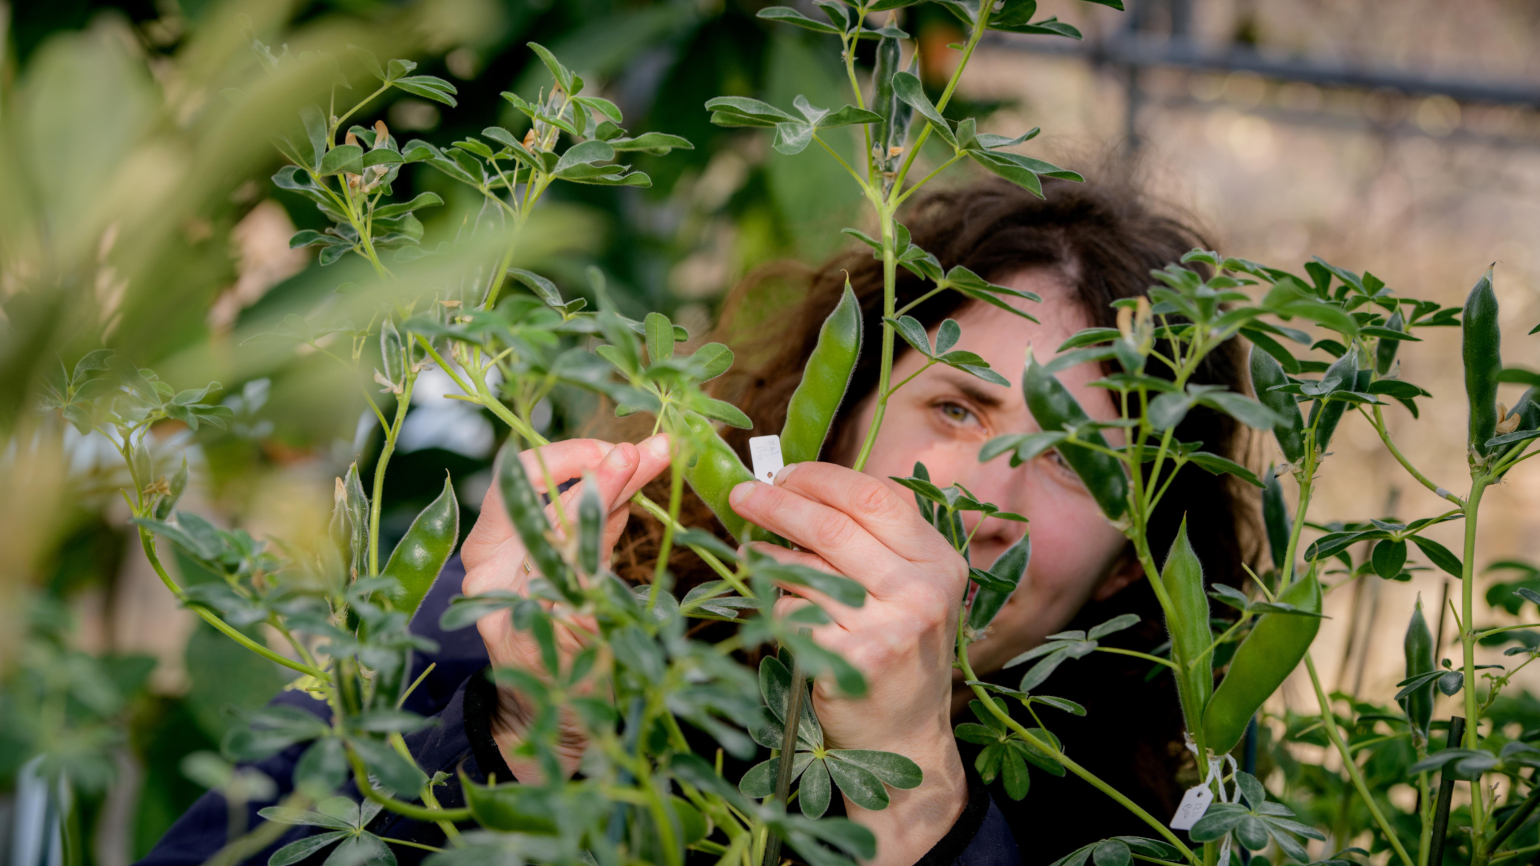 A staff member is checking a plant for ripeness